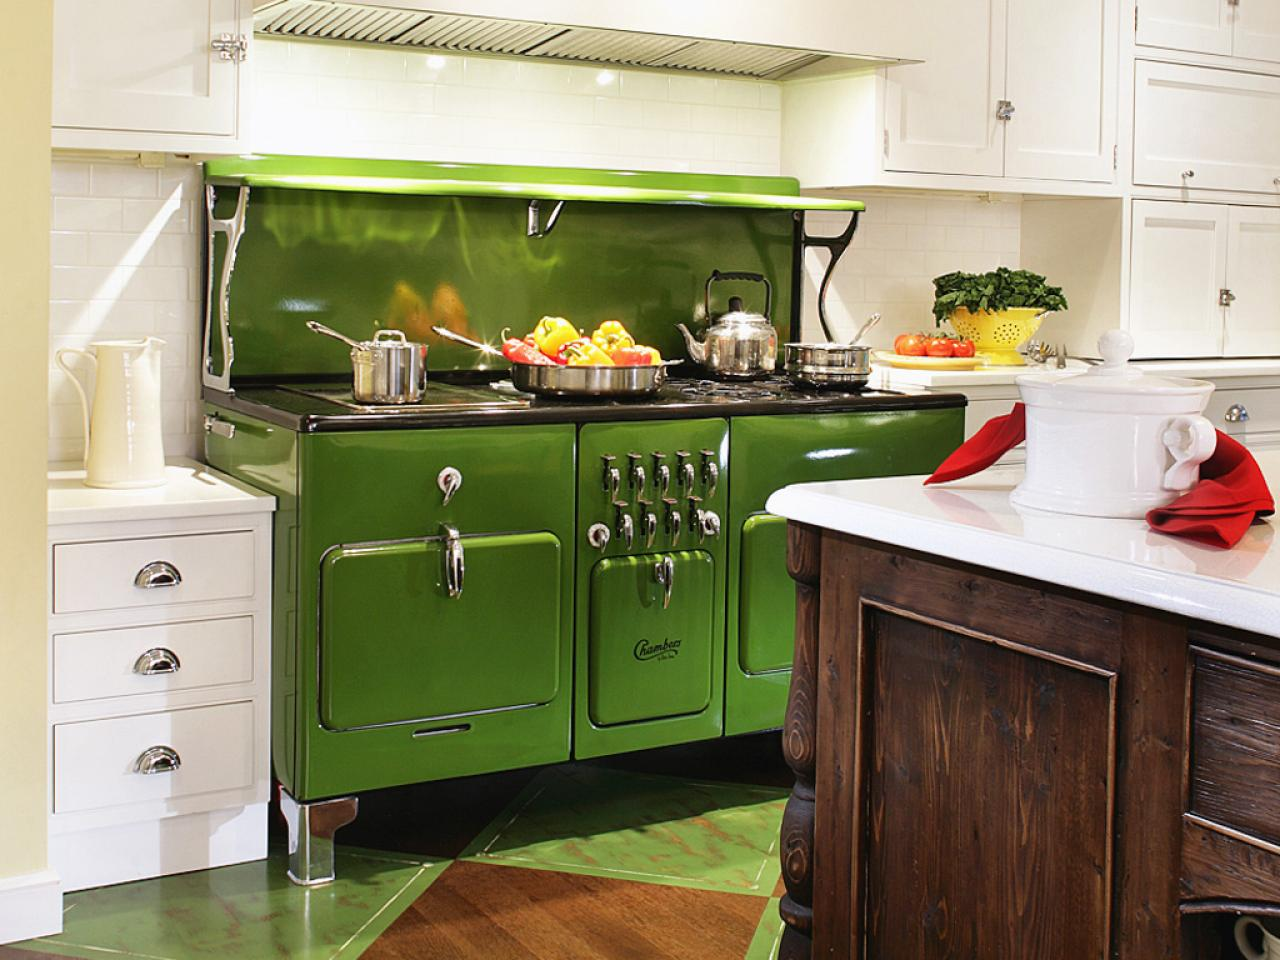 Painting Tiles In The Kitchen Painting Kitchen Appliances Pictures Ideas From Hgtv Hgtv